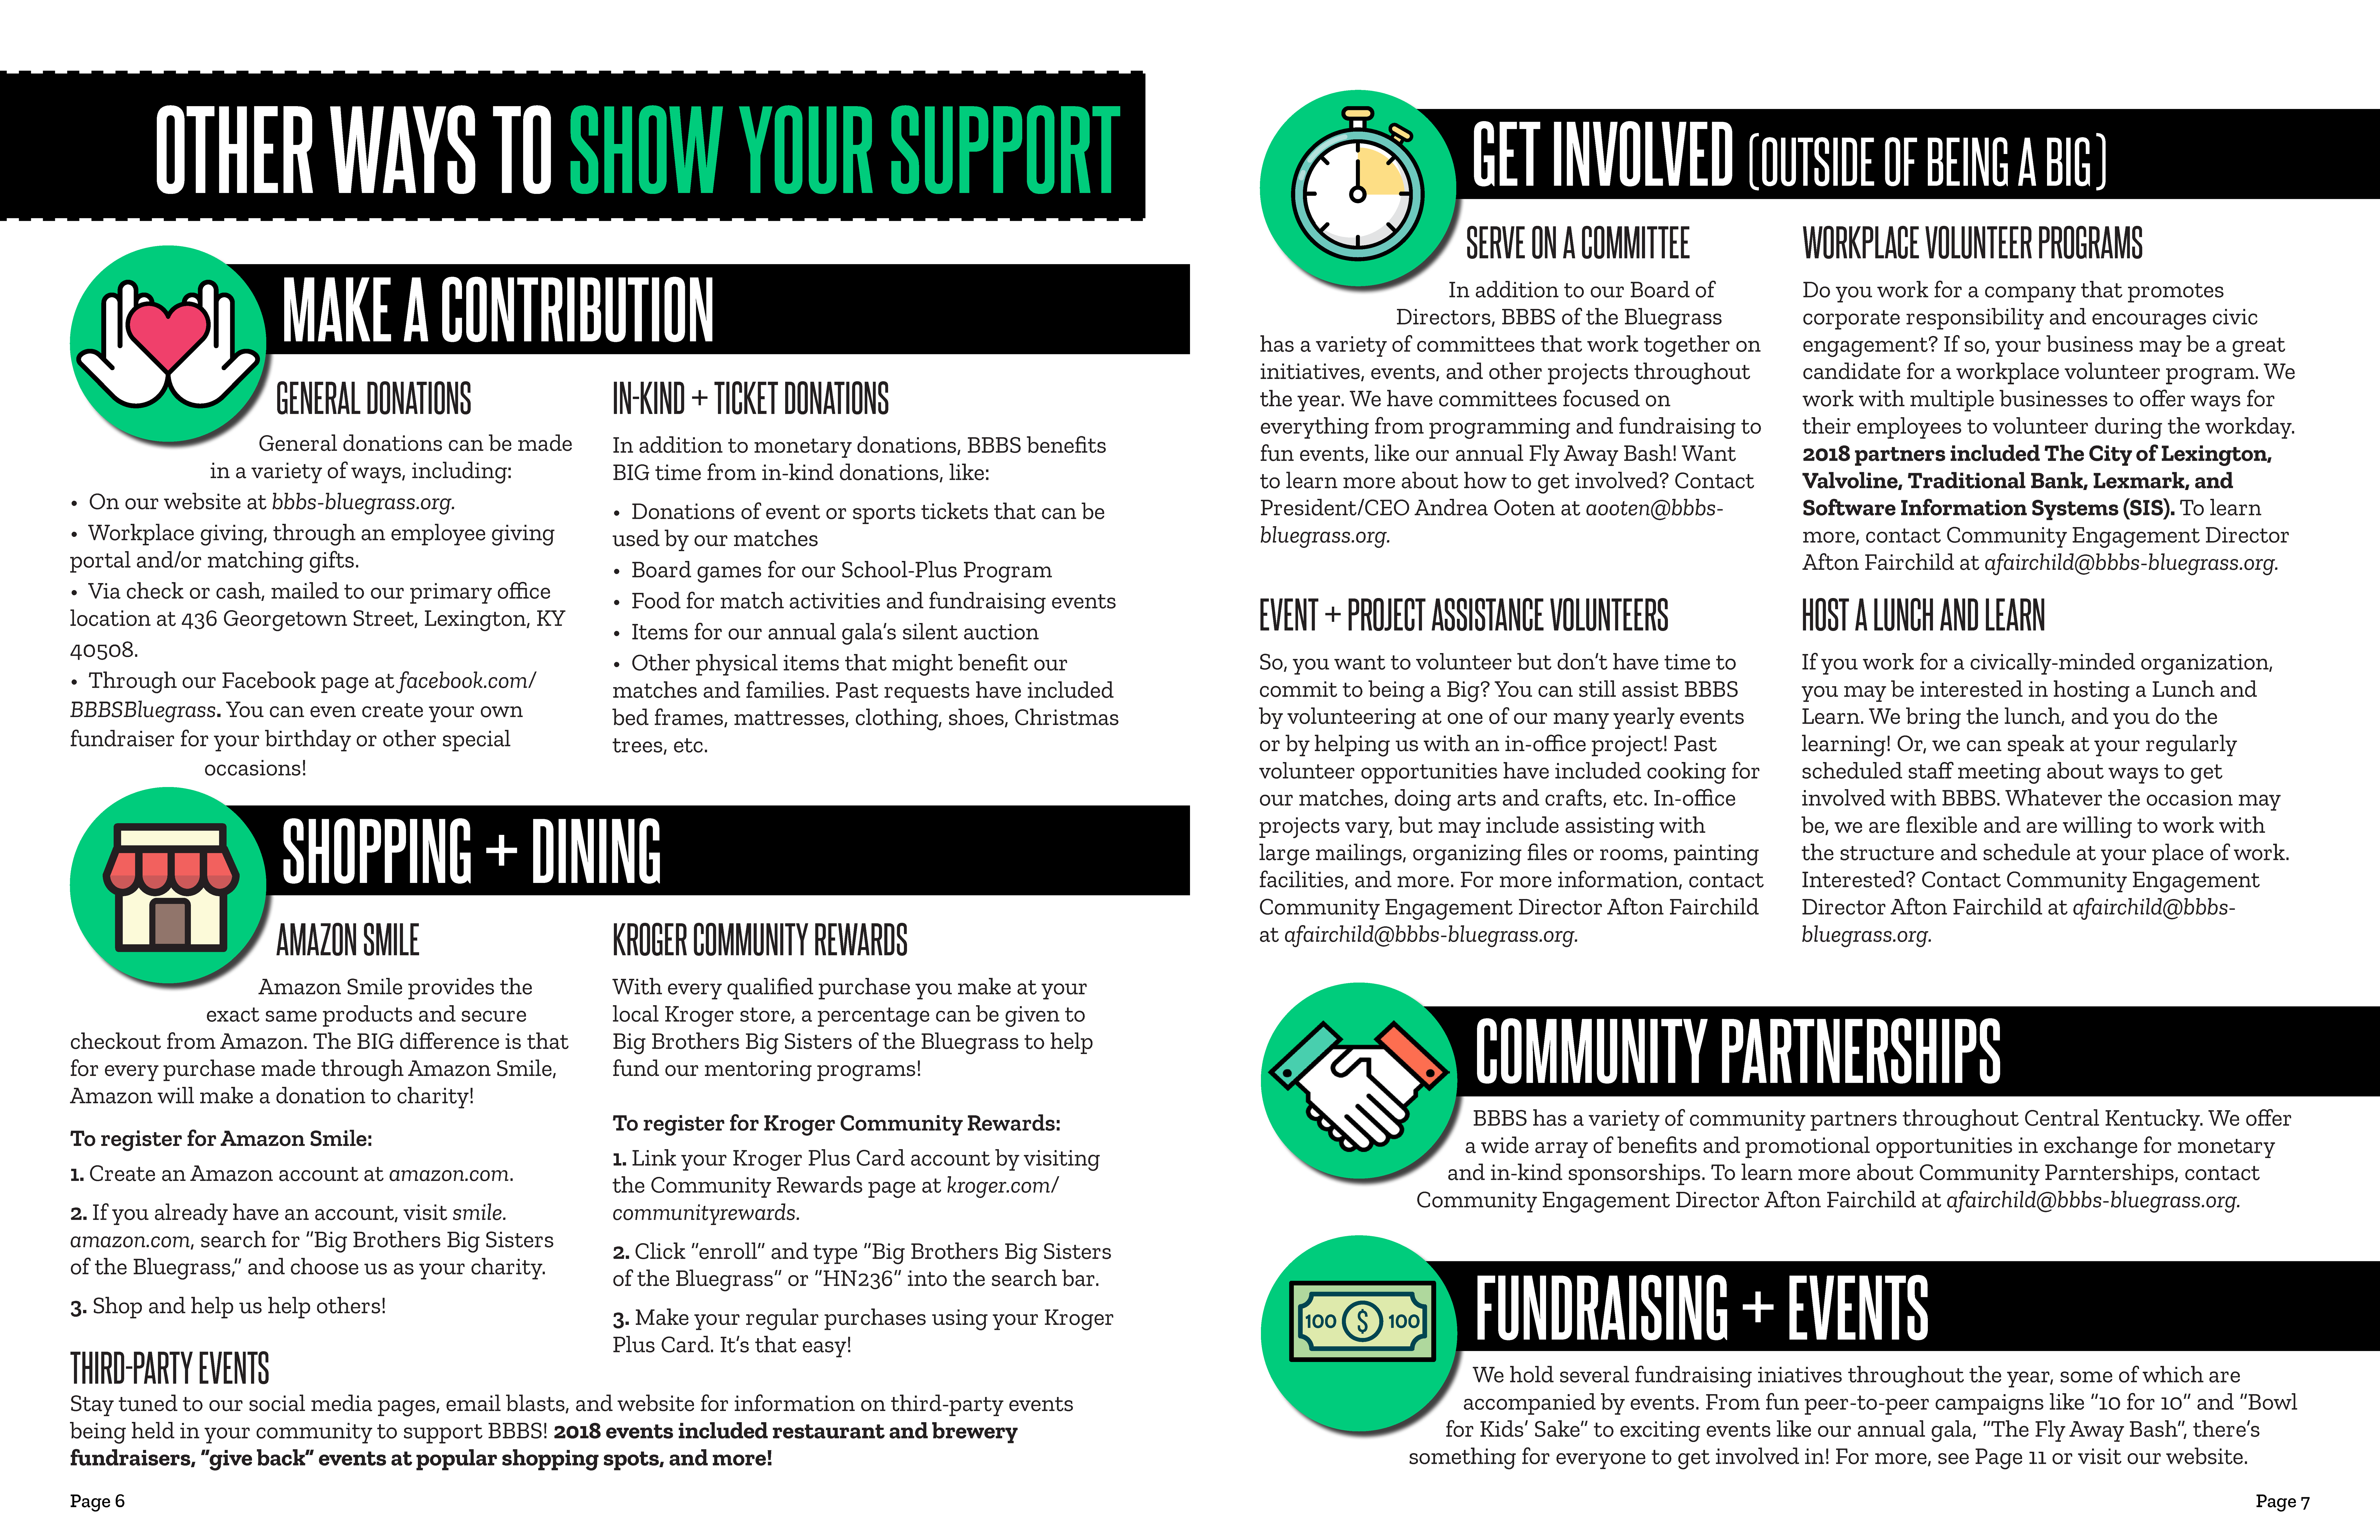 Community Impact Report Magazine Page 4 Big Brothers Big Sisters Of The Bluegrass